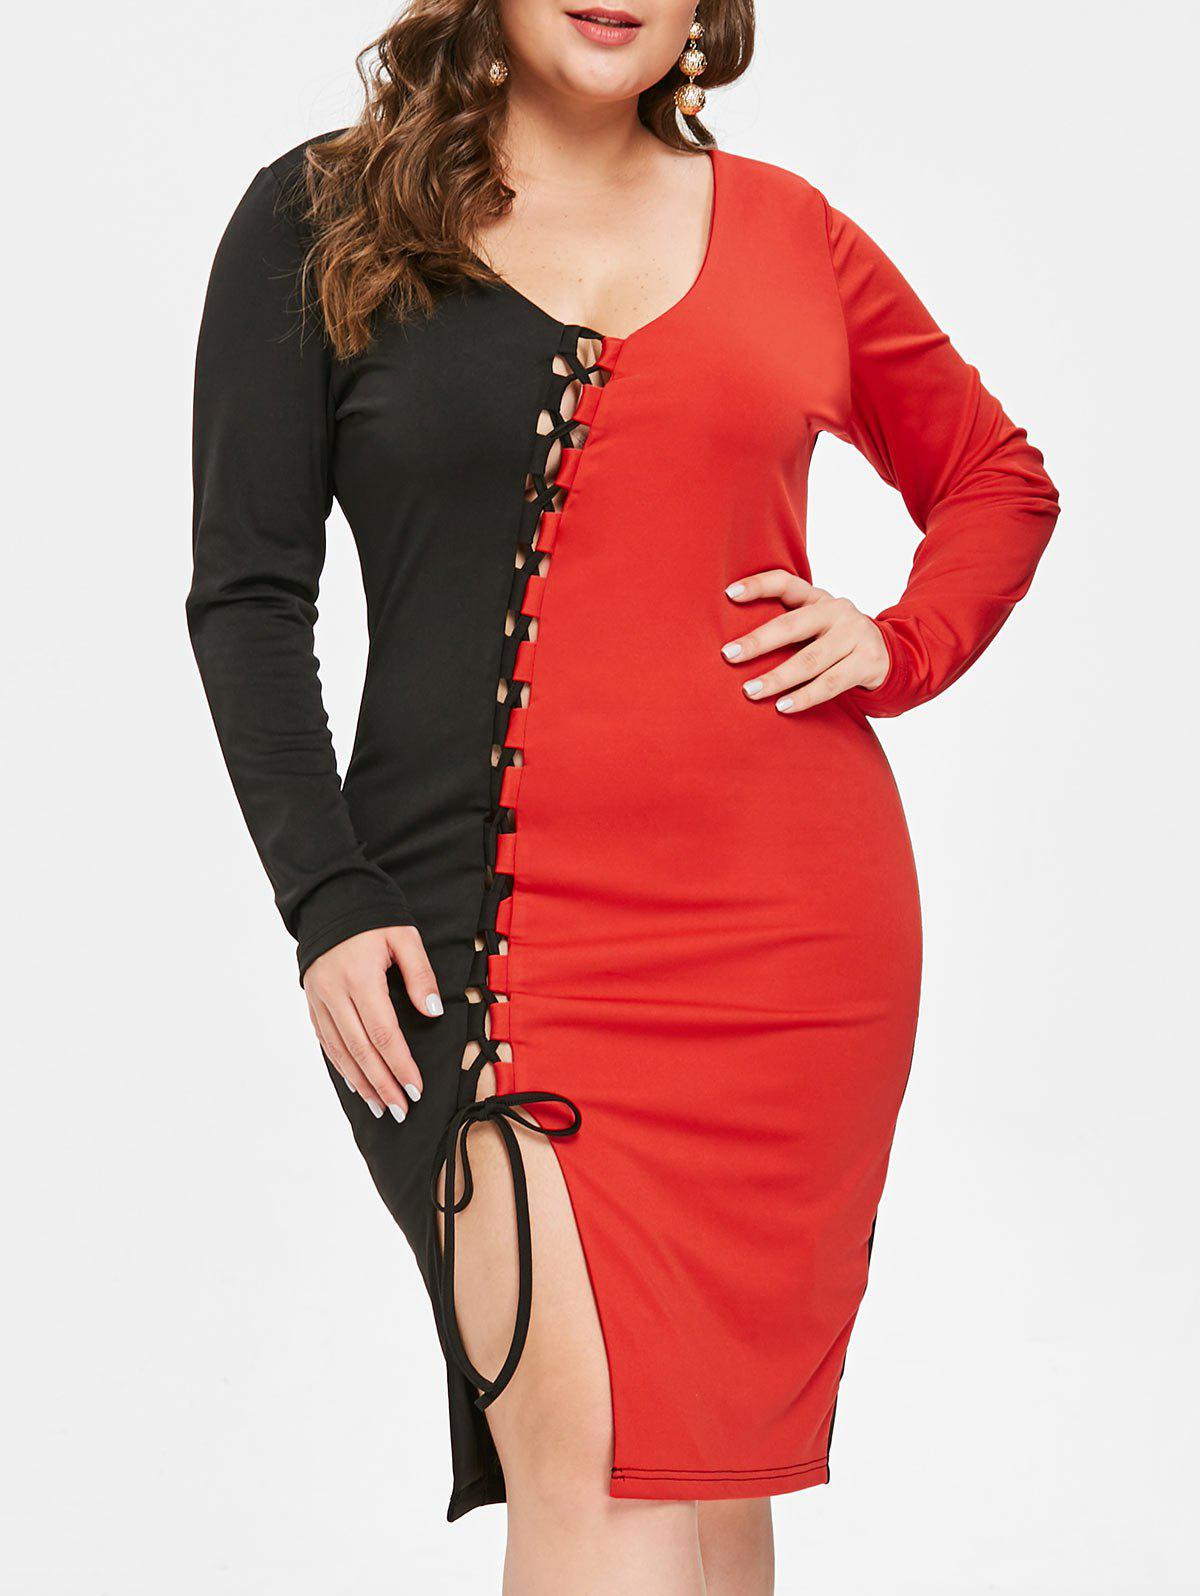 6dae40a7c8 32% OFF  Plus Size Lace Up Contrast Bodycon Dress